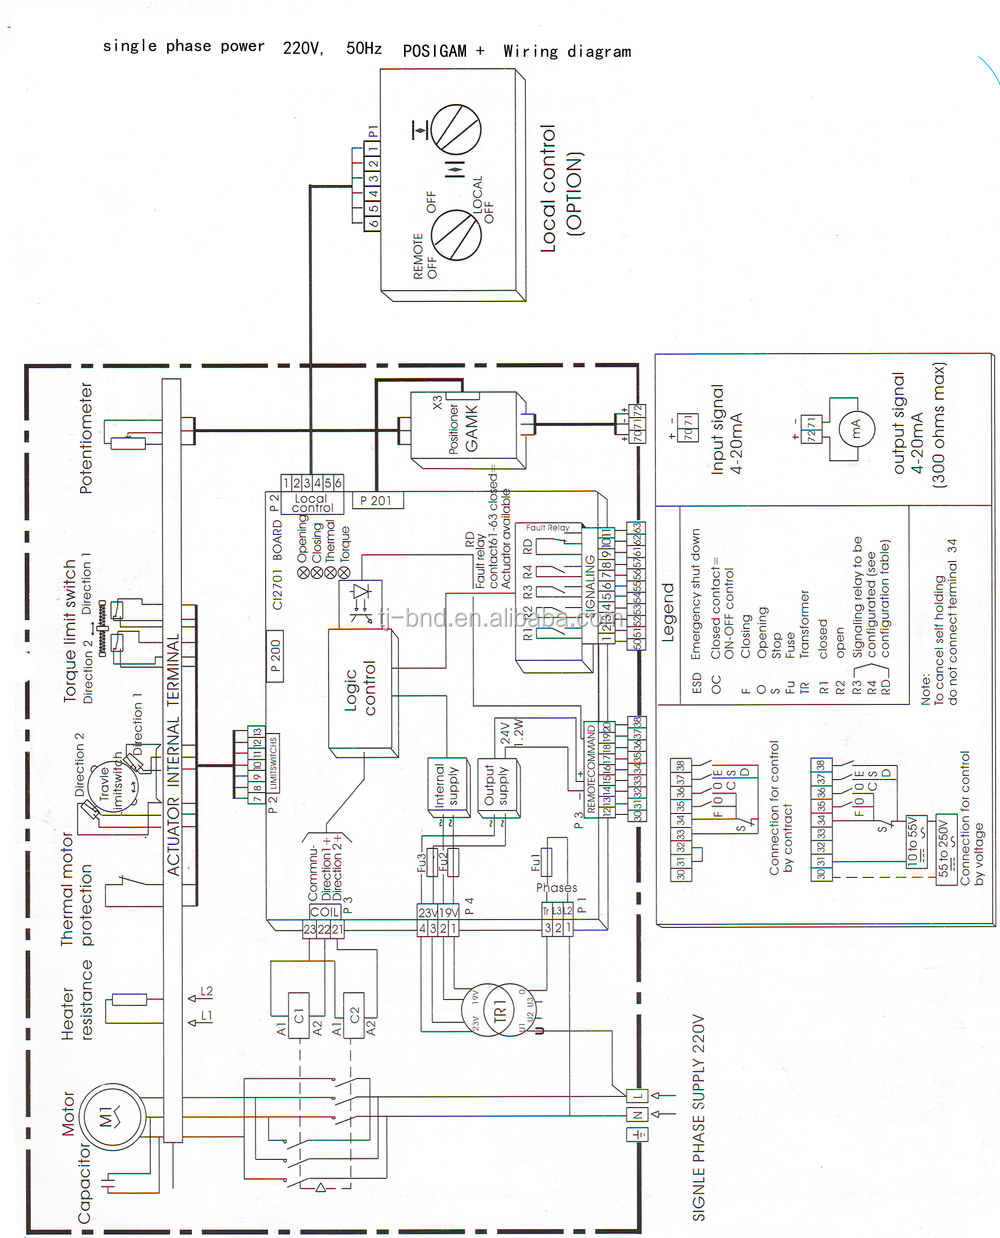 Wiring Diagram For Residential : Residential electrical wiring diagrams of